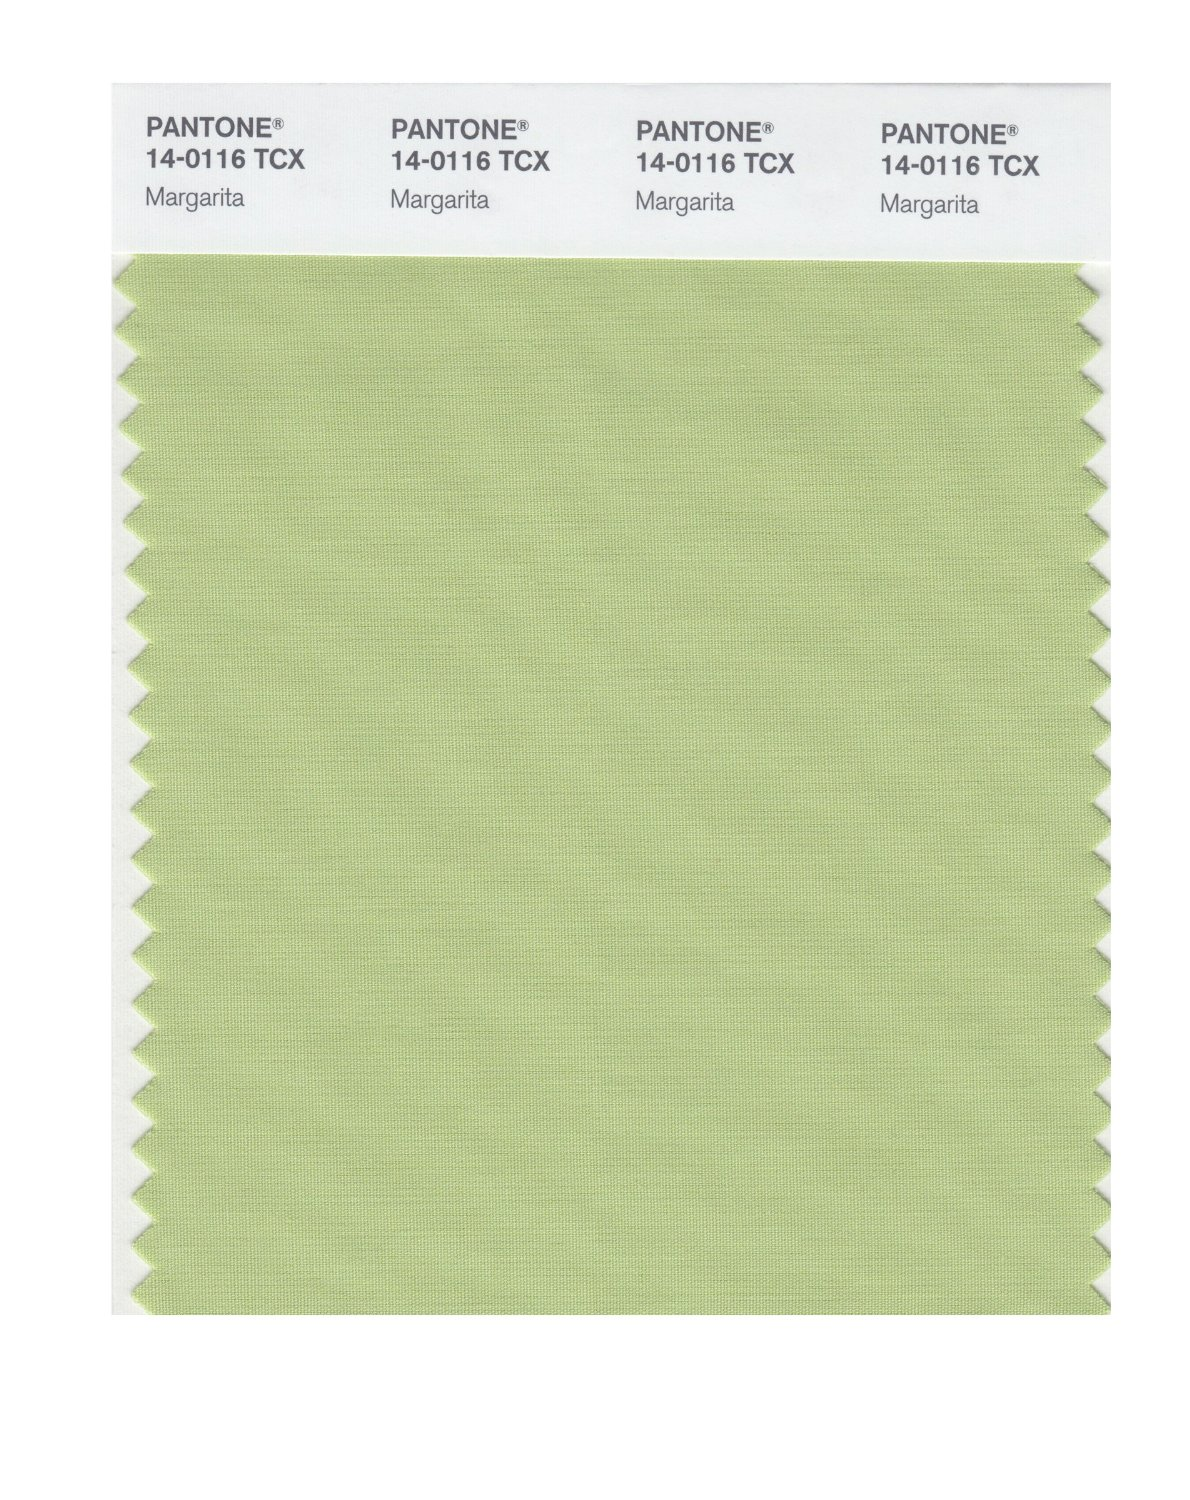 Pantone Smart Swatch 14-0116 Margarita